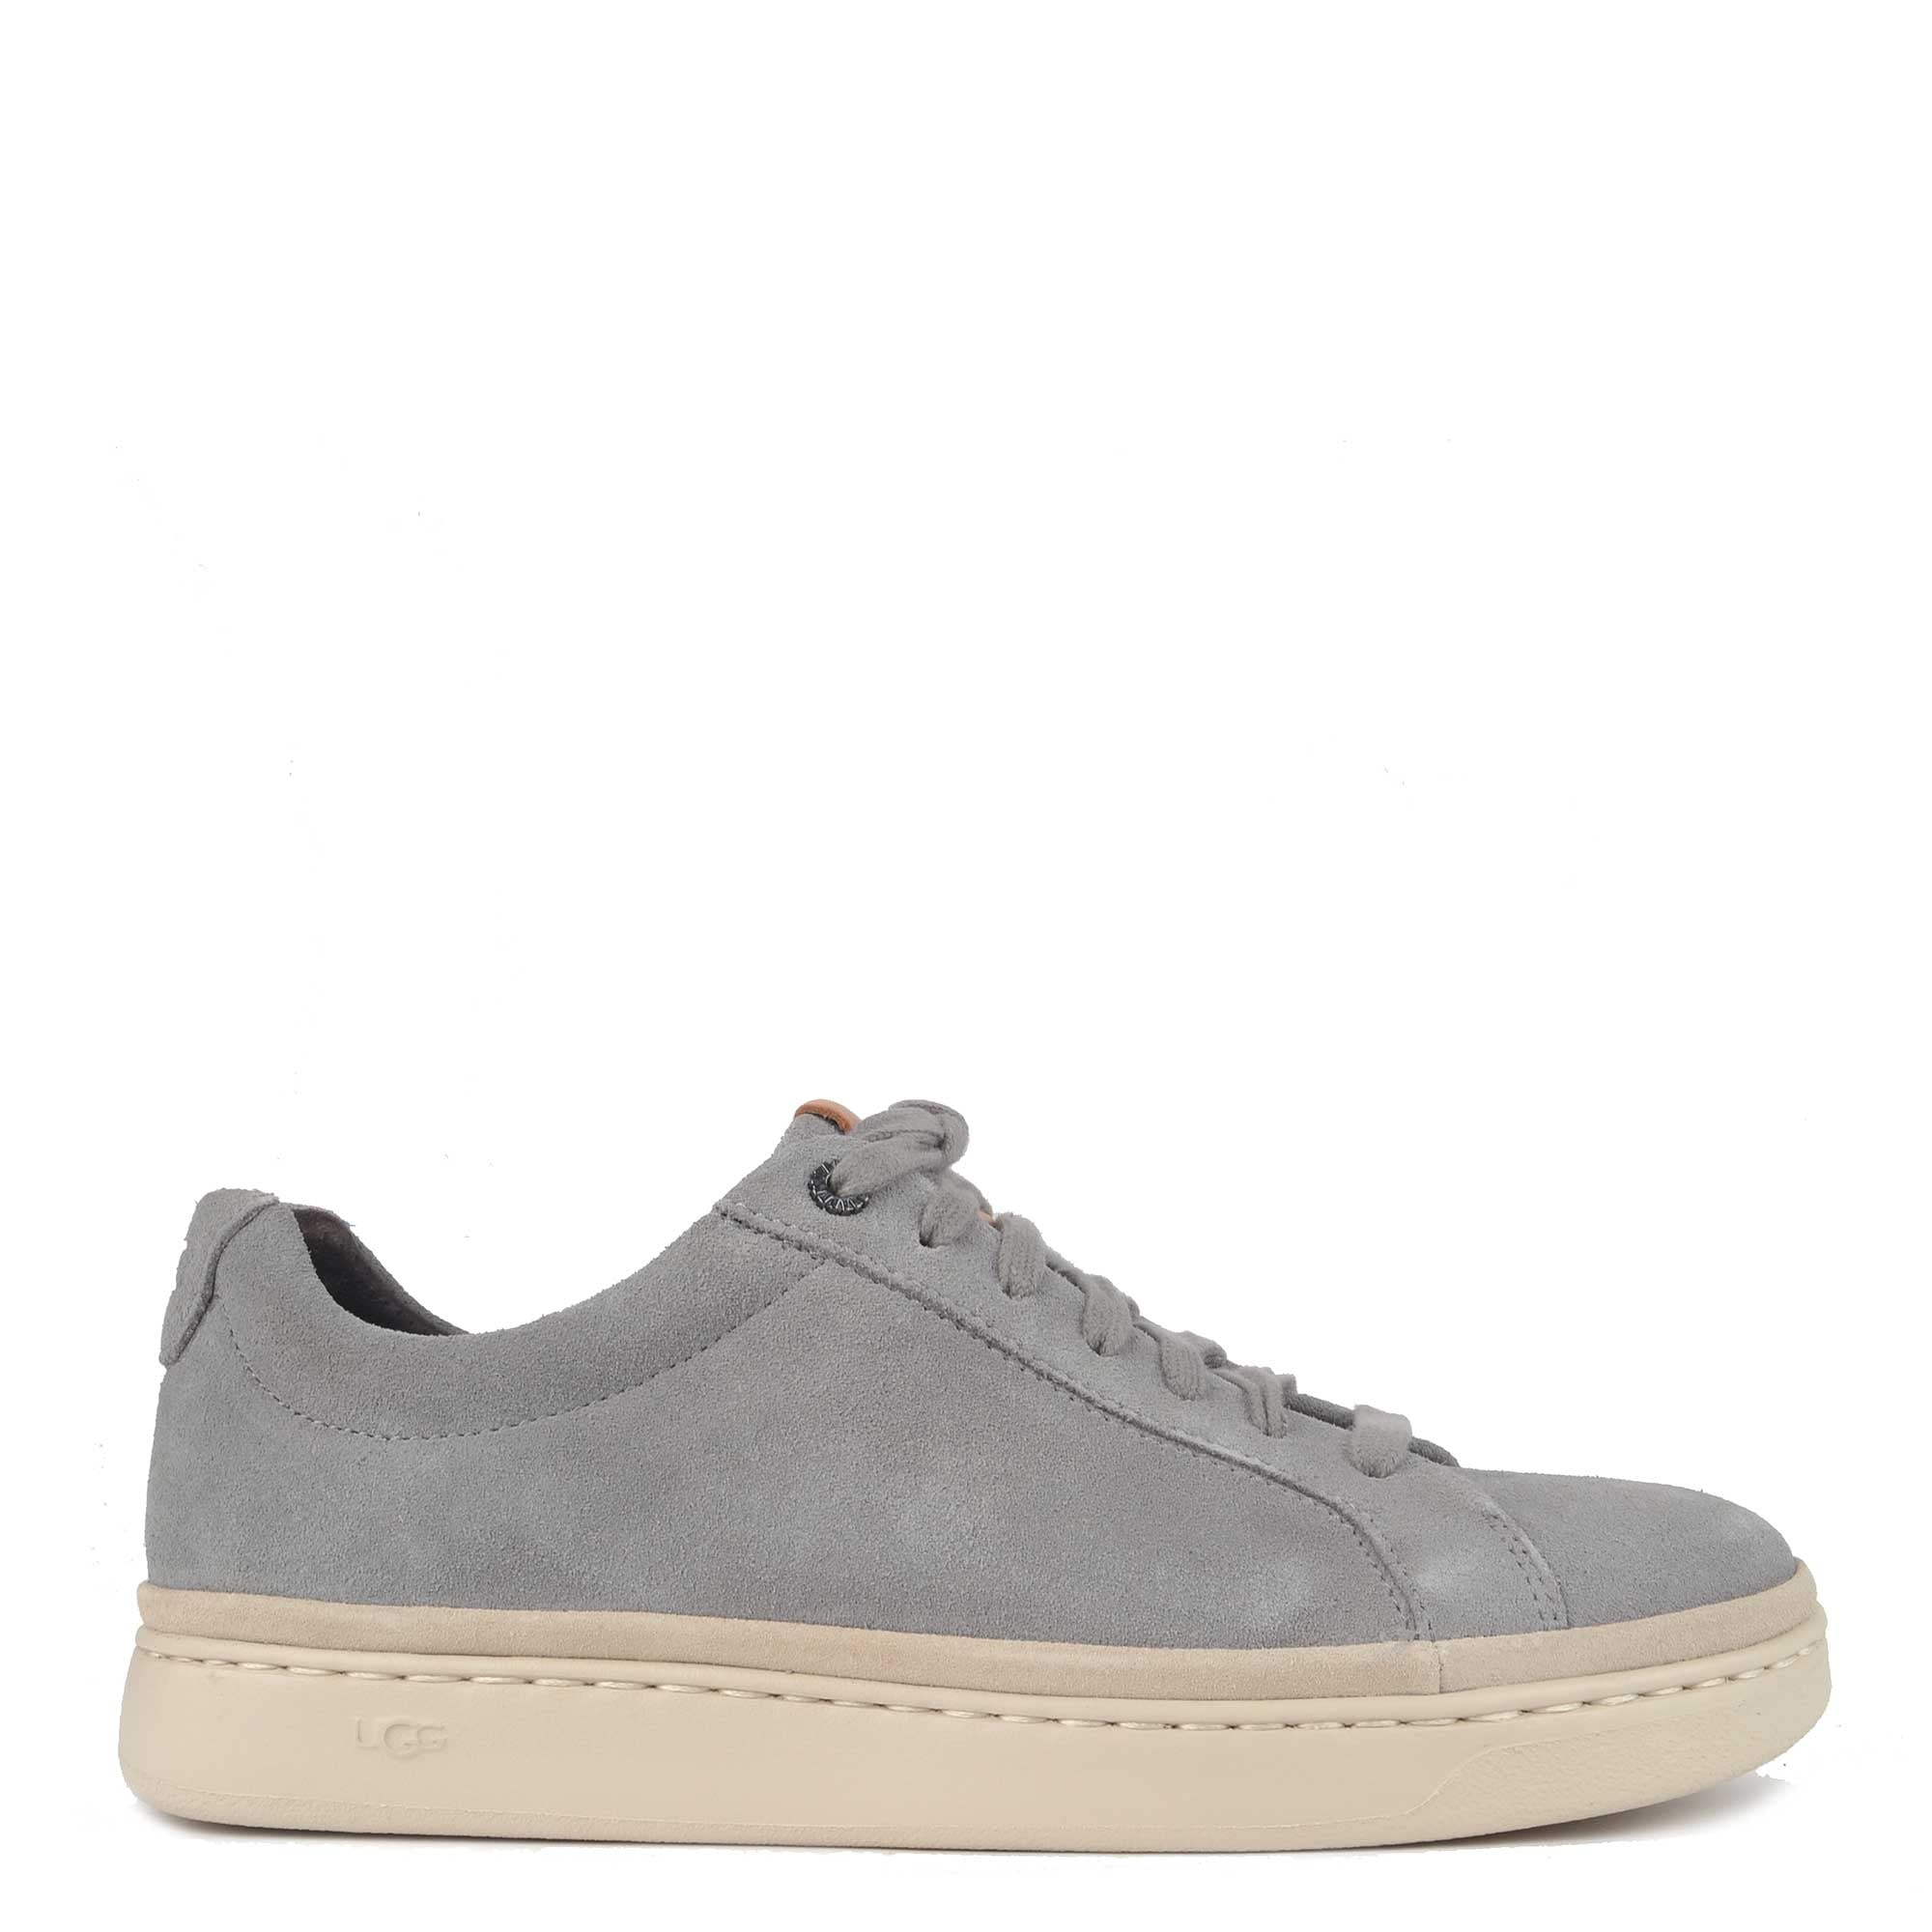 UGG Mens' Cali Low Top Suede Trainers